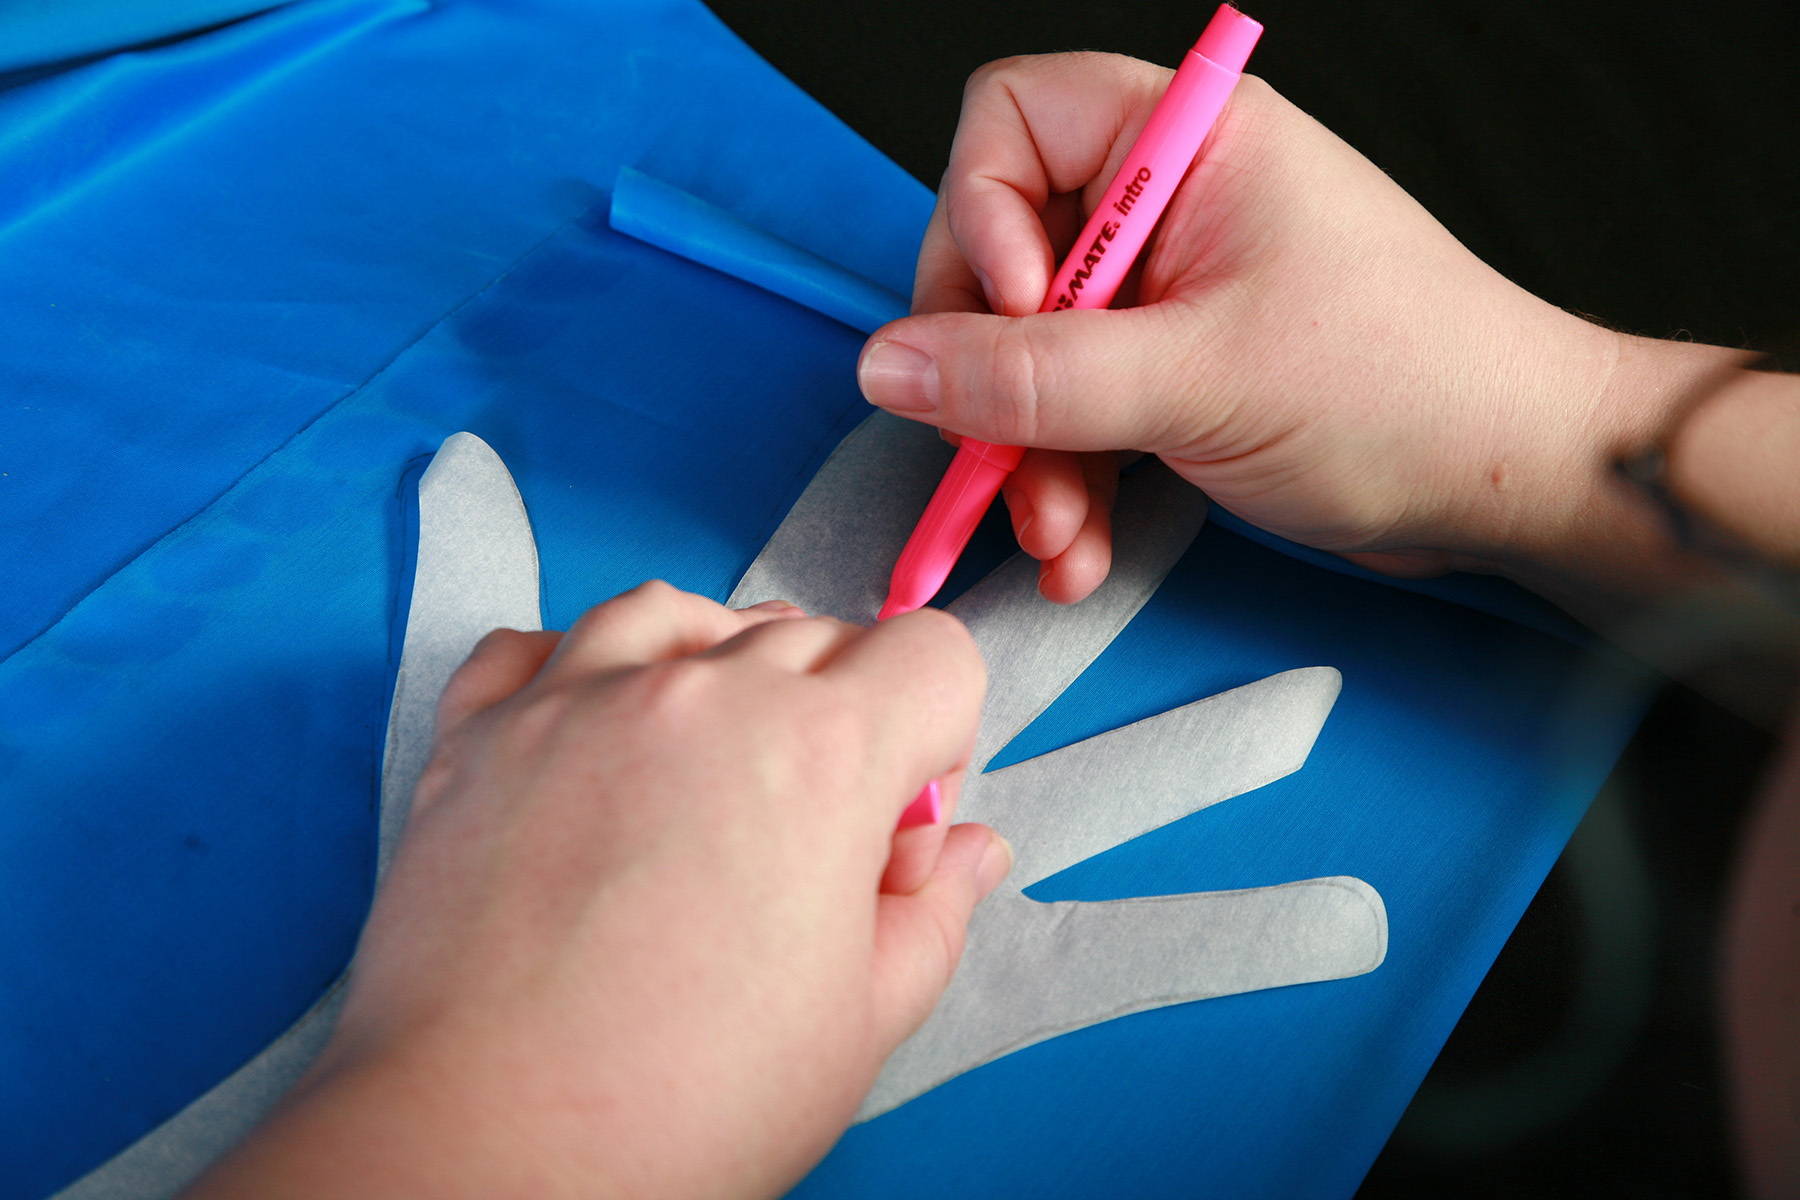 A glove pattern is being traced onto blue spandex fabric.